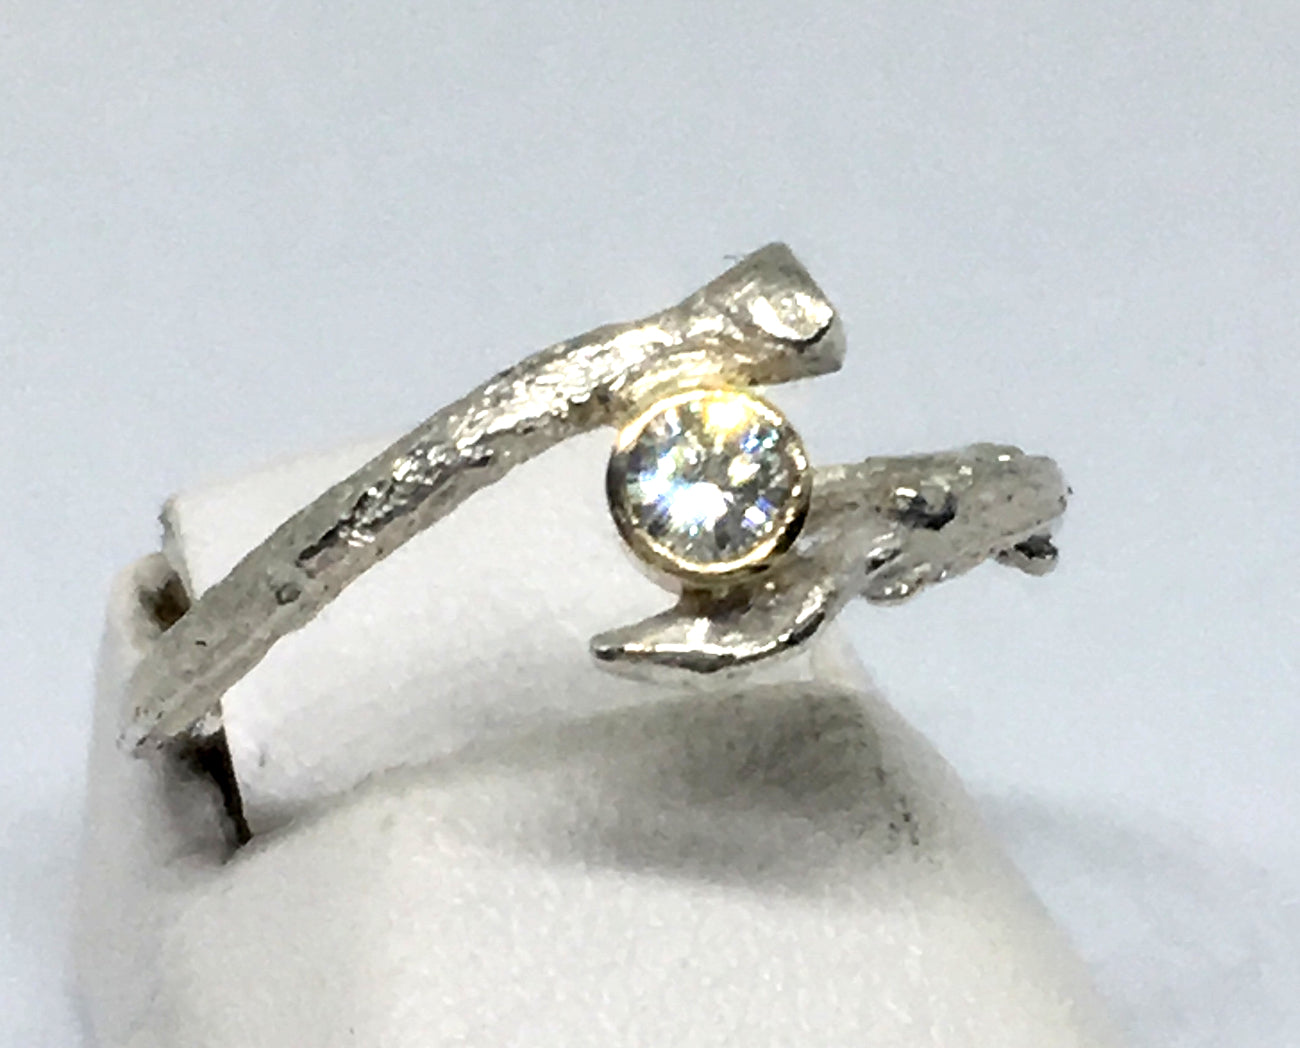 Realistic olive twig diamond ring in sterling silver and 14K gold